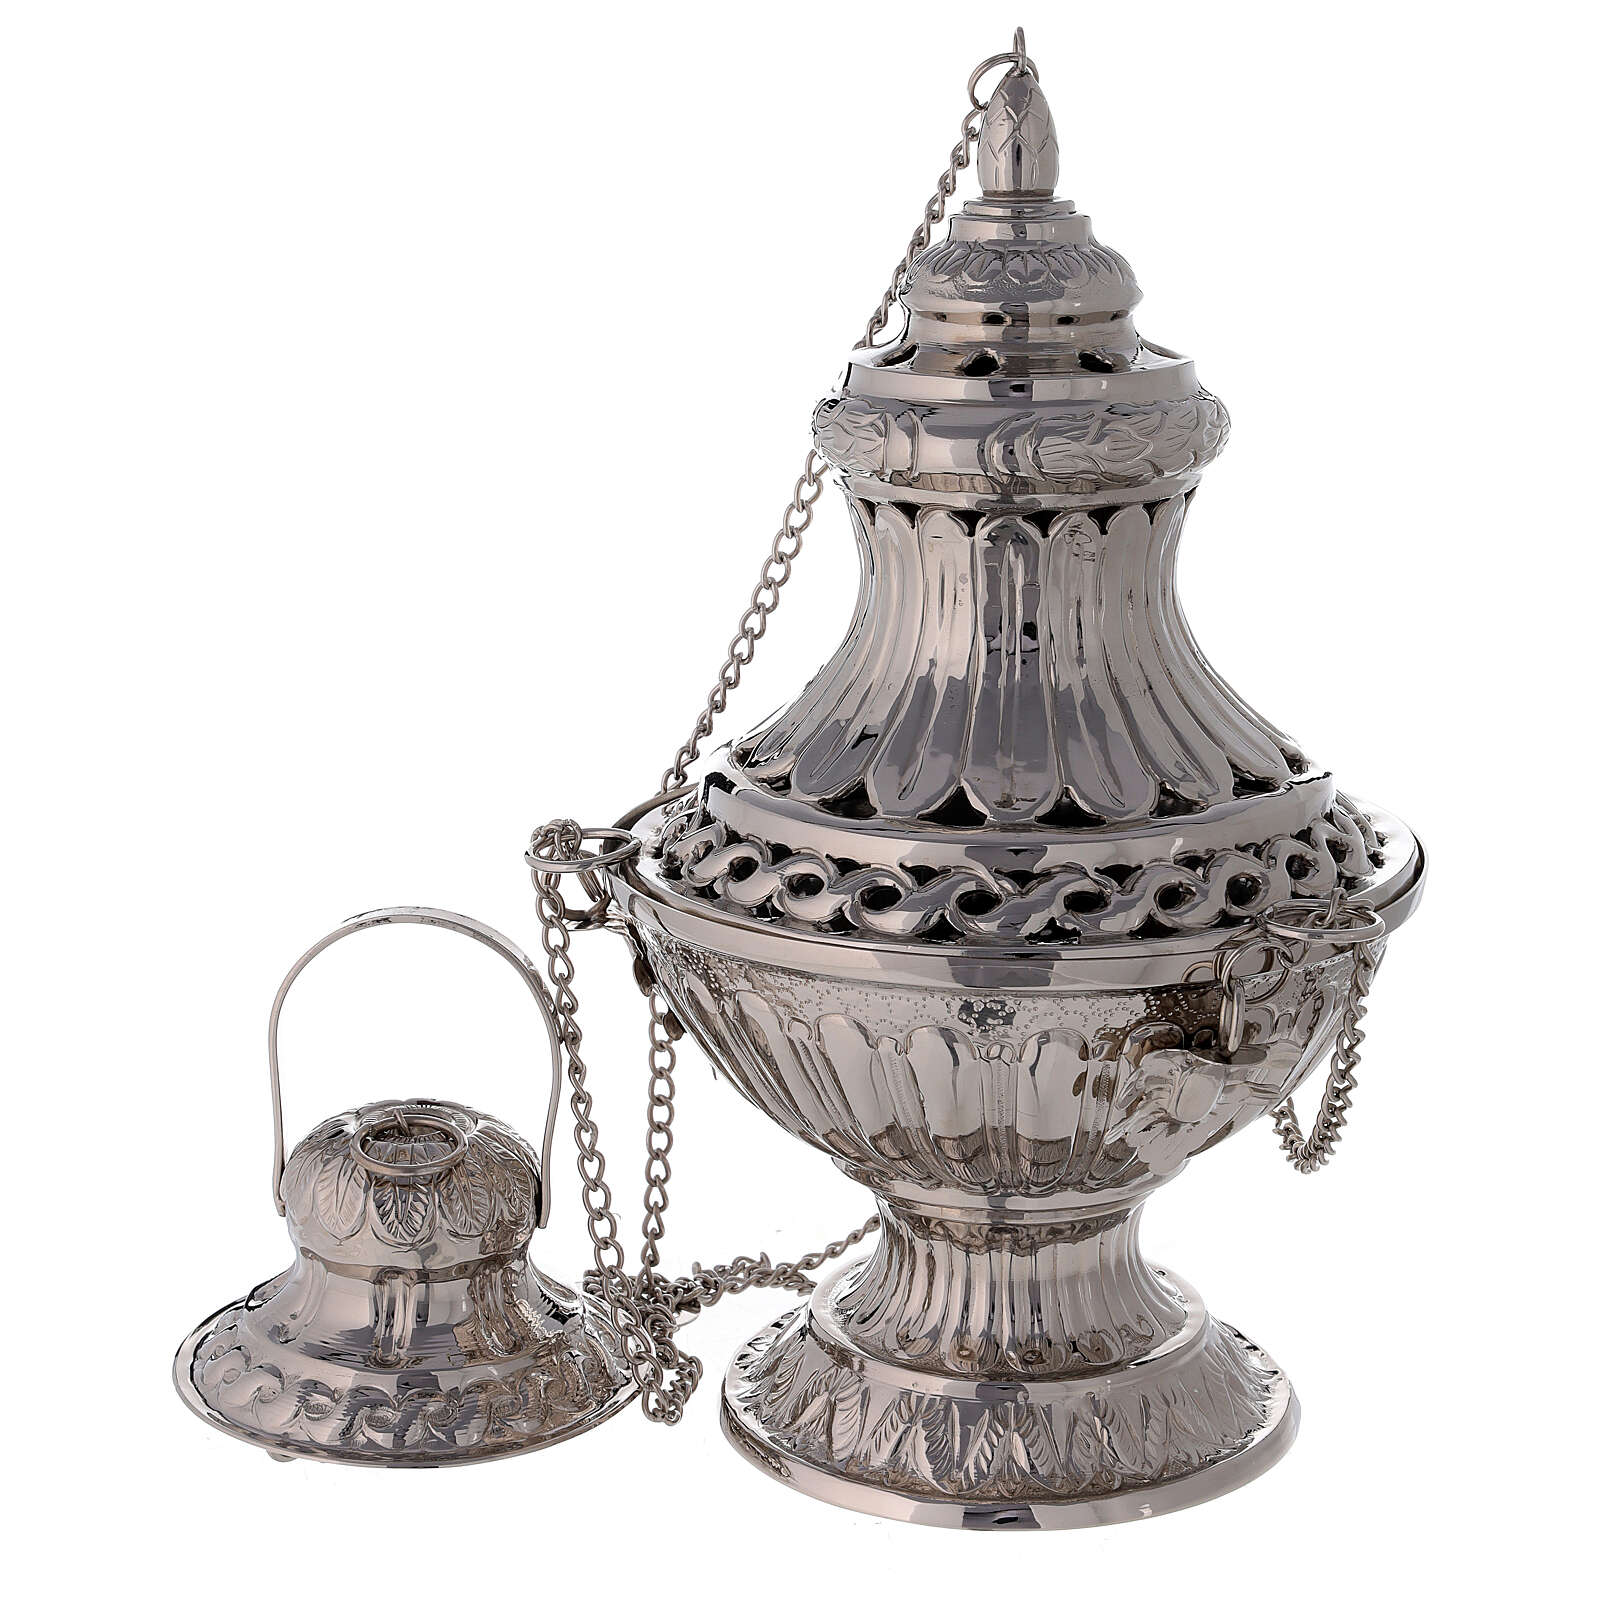 Bell-mouthed thurible in nickel-plated brass 11 3/4 in with basket 3